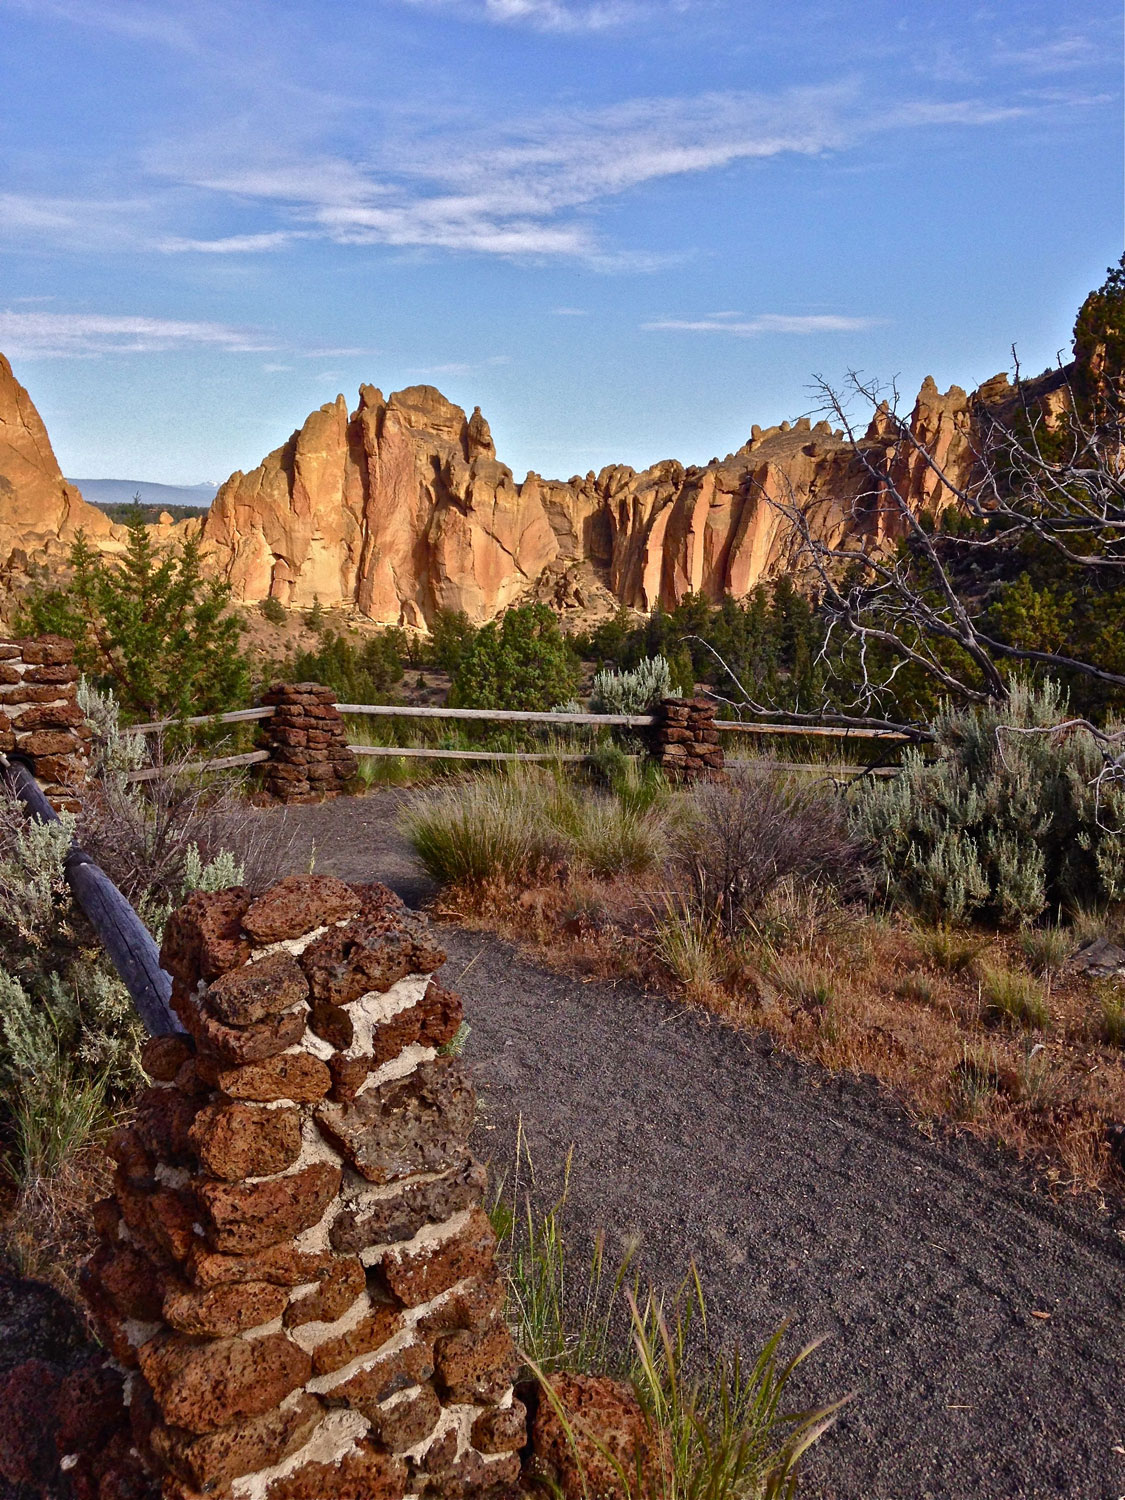 Continuation of the path away from the main climbing view area toward the campground at Smith Rock State Park.